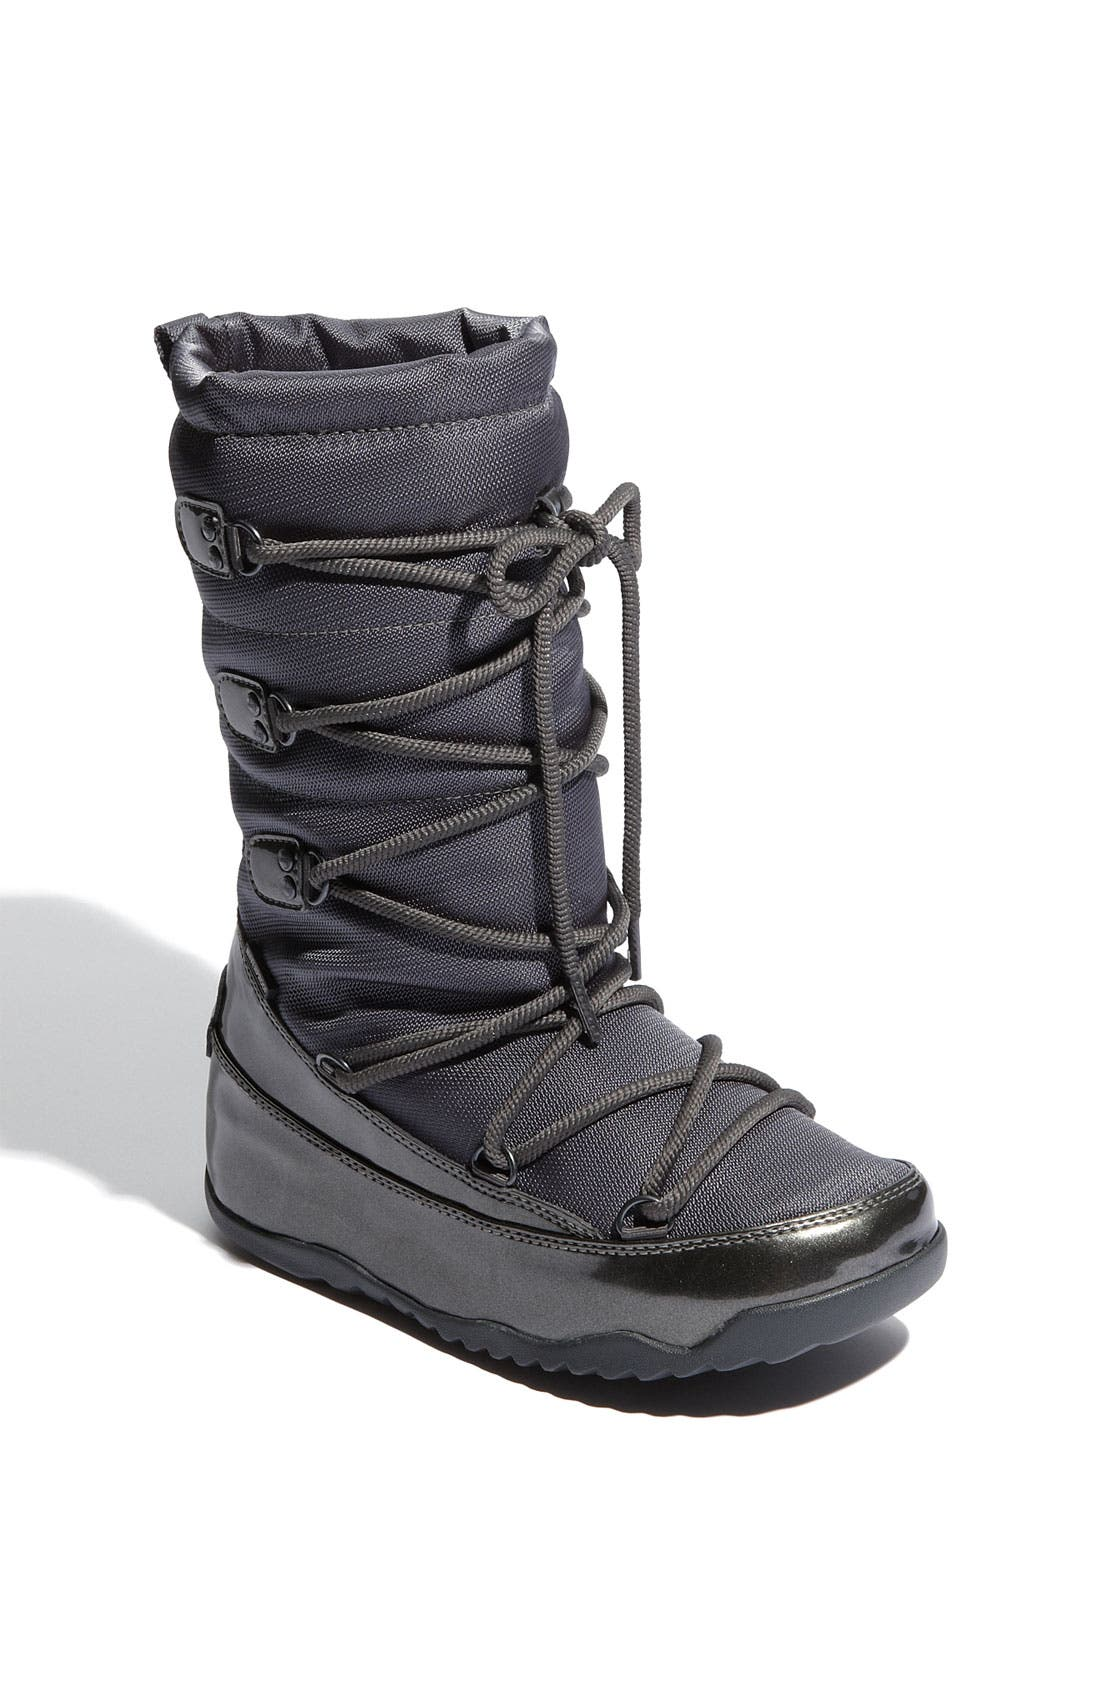 Main Image - FitFlop 'Blizz' Boot